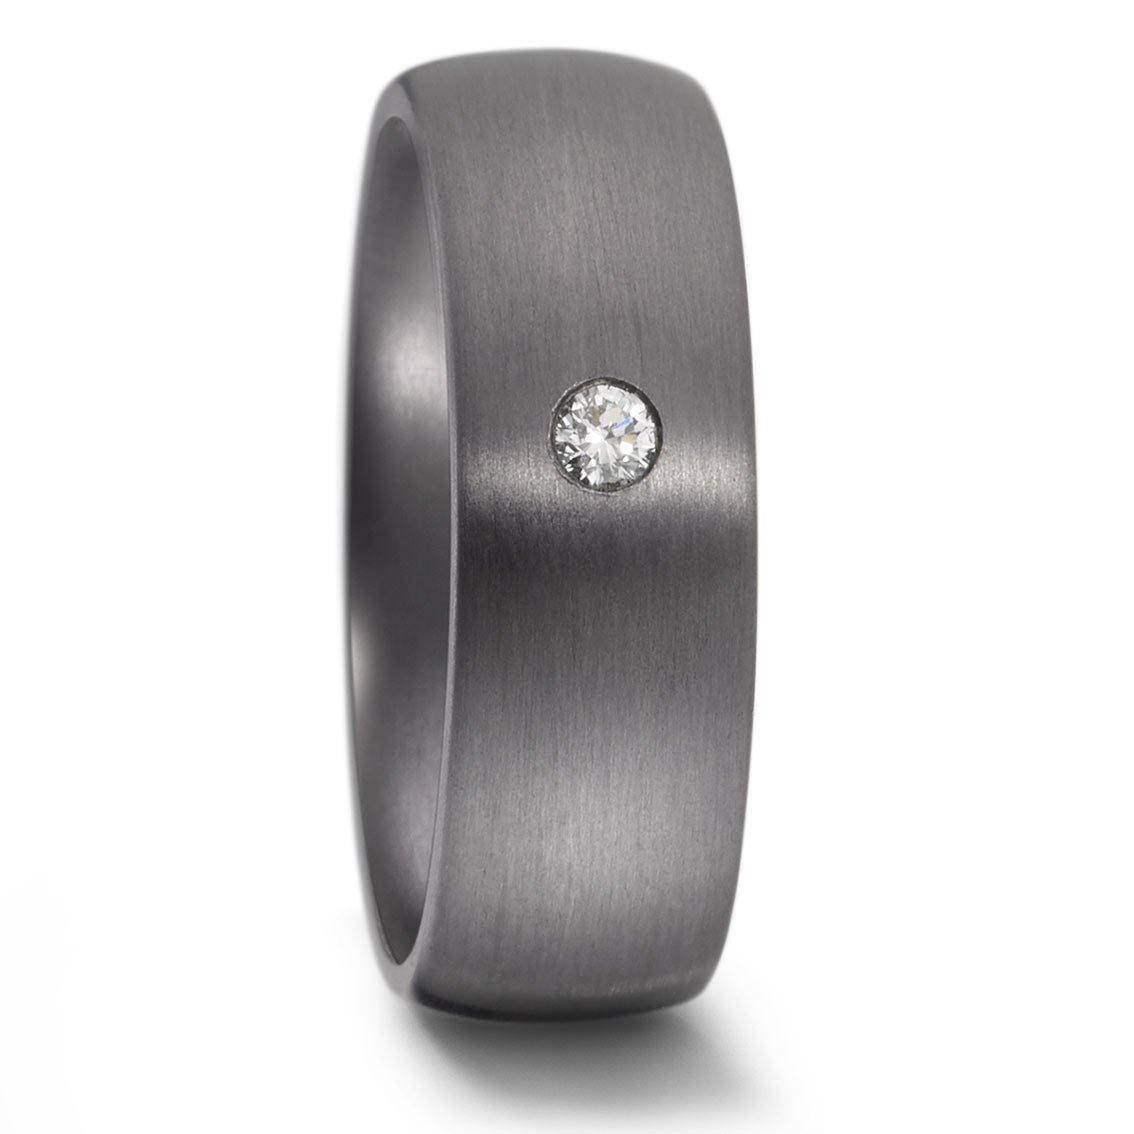 Teno Eheringe Tantal Diamant 0,05 ct